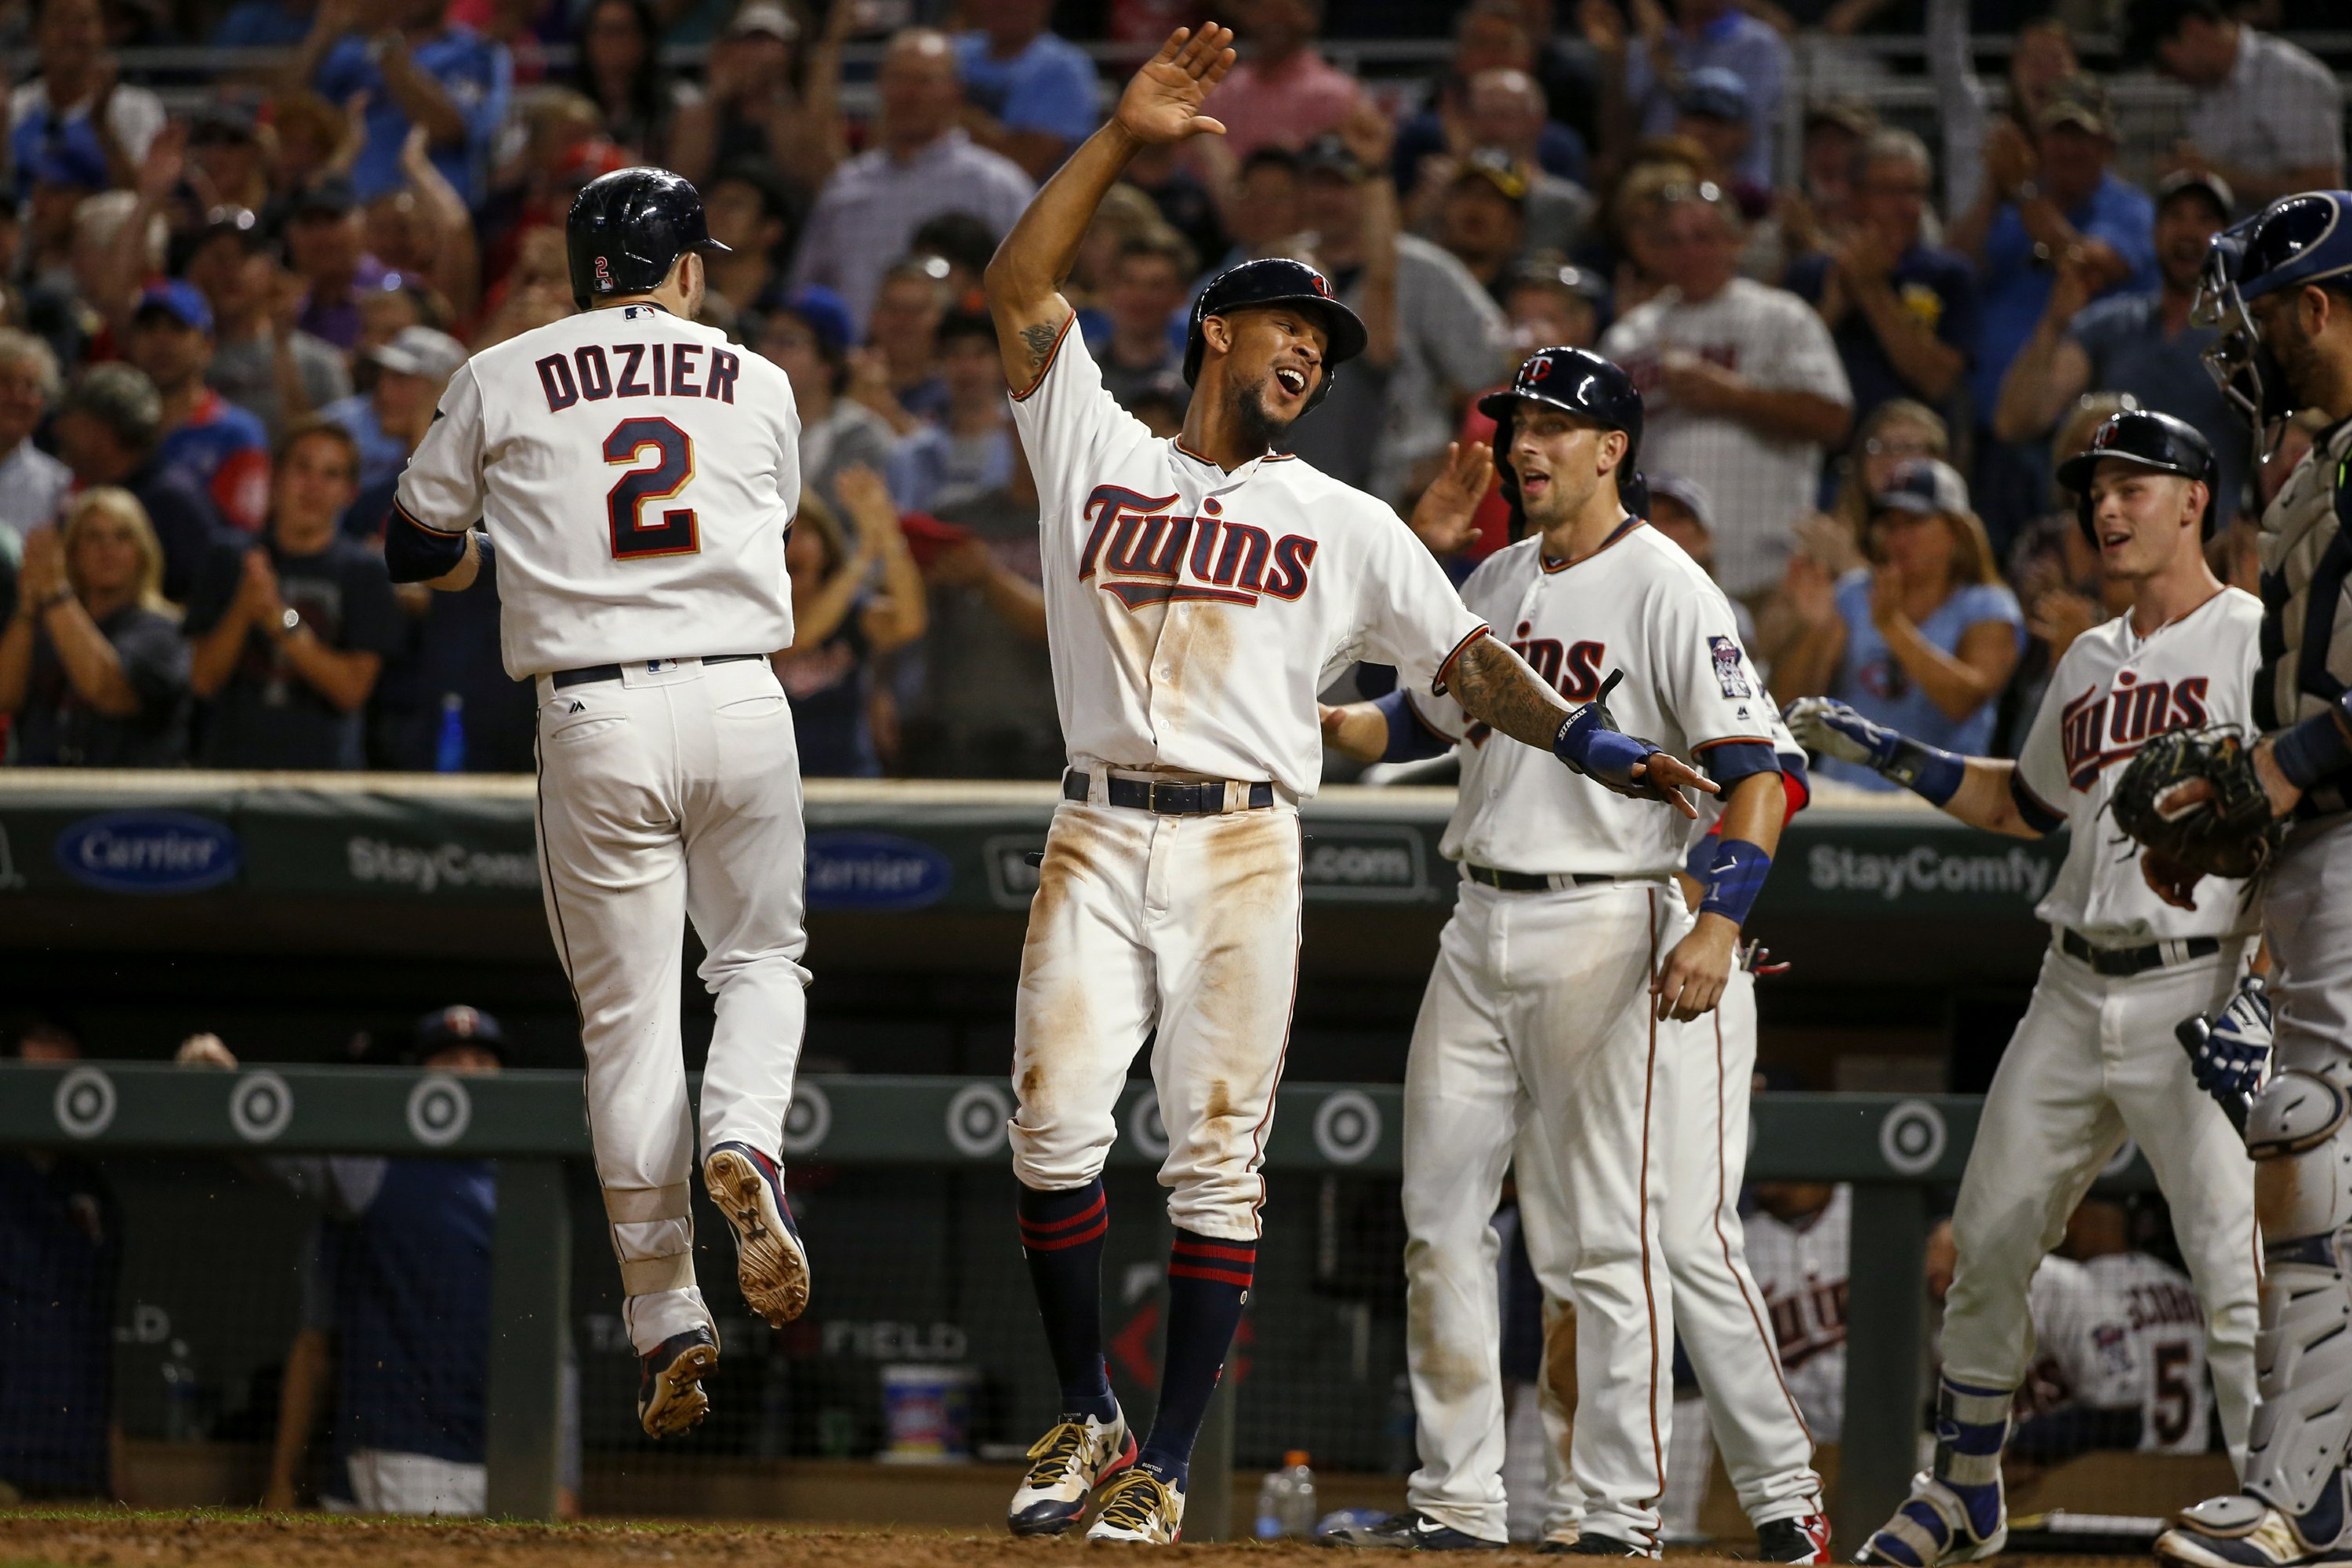 Dozier slam among 5 homers for Twins in 11-4 win vs  Brewers